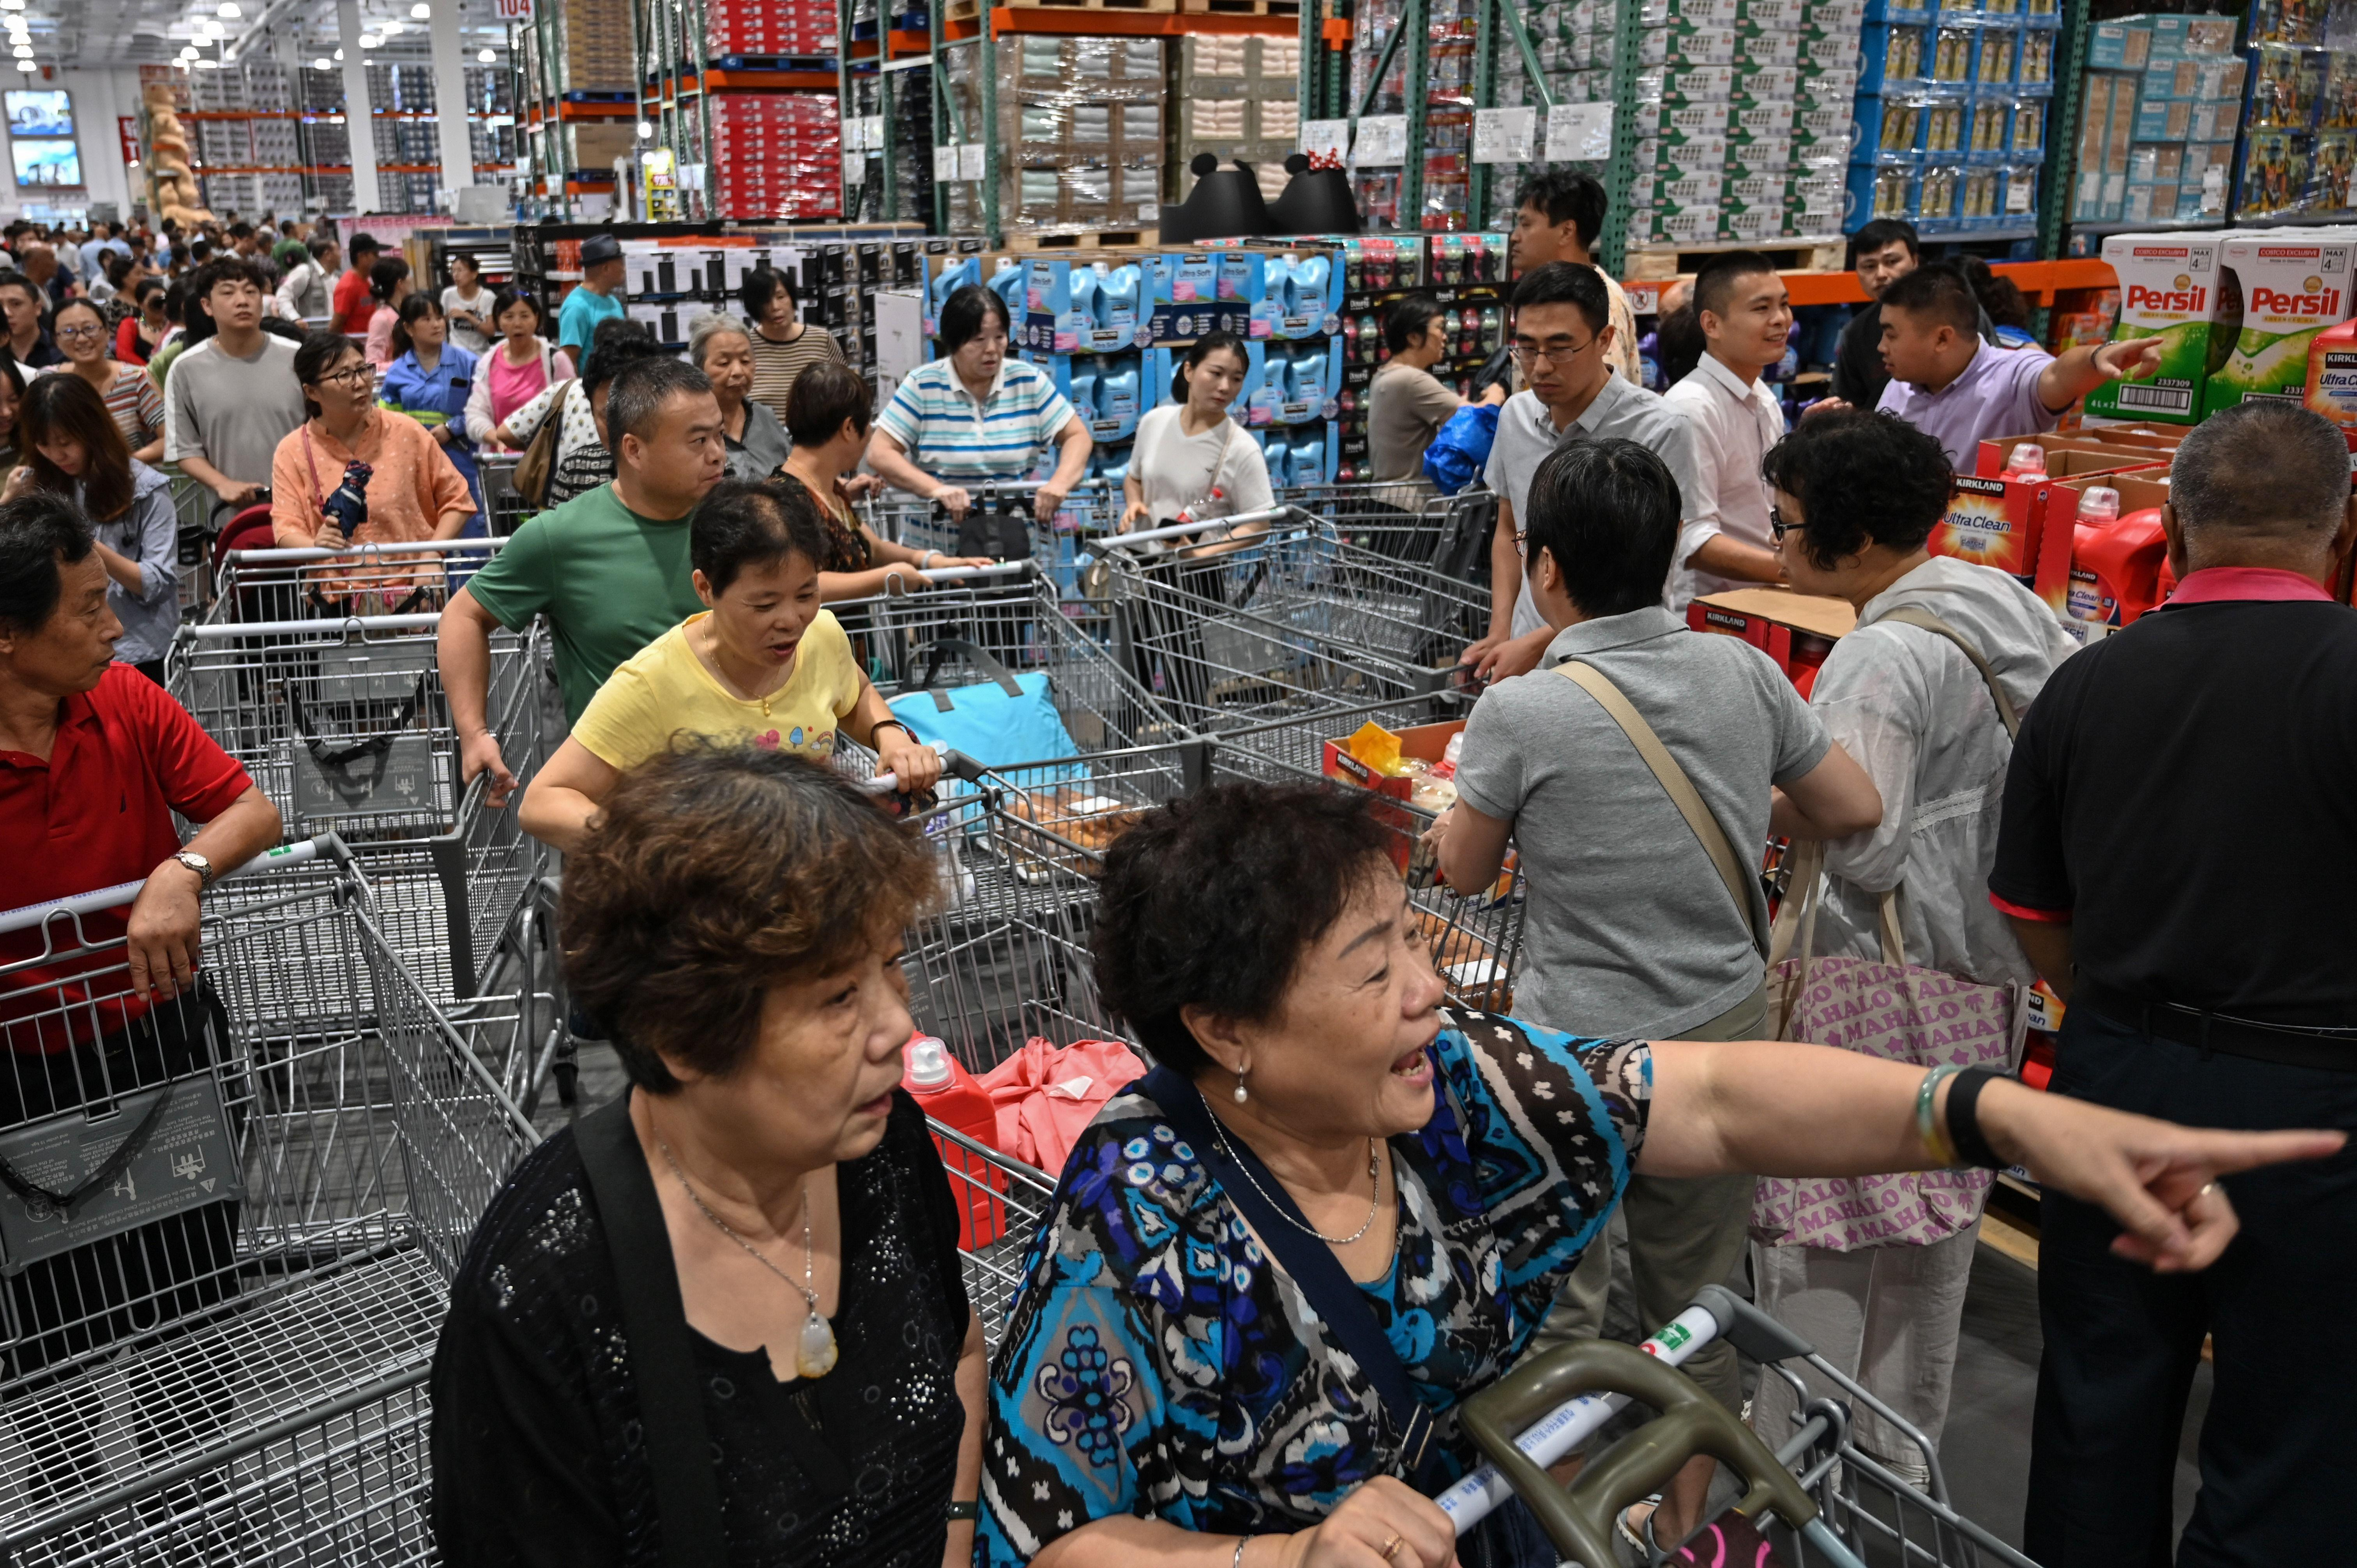 Massive crowds force China's first Costco to close early on opening day: RPT